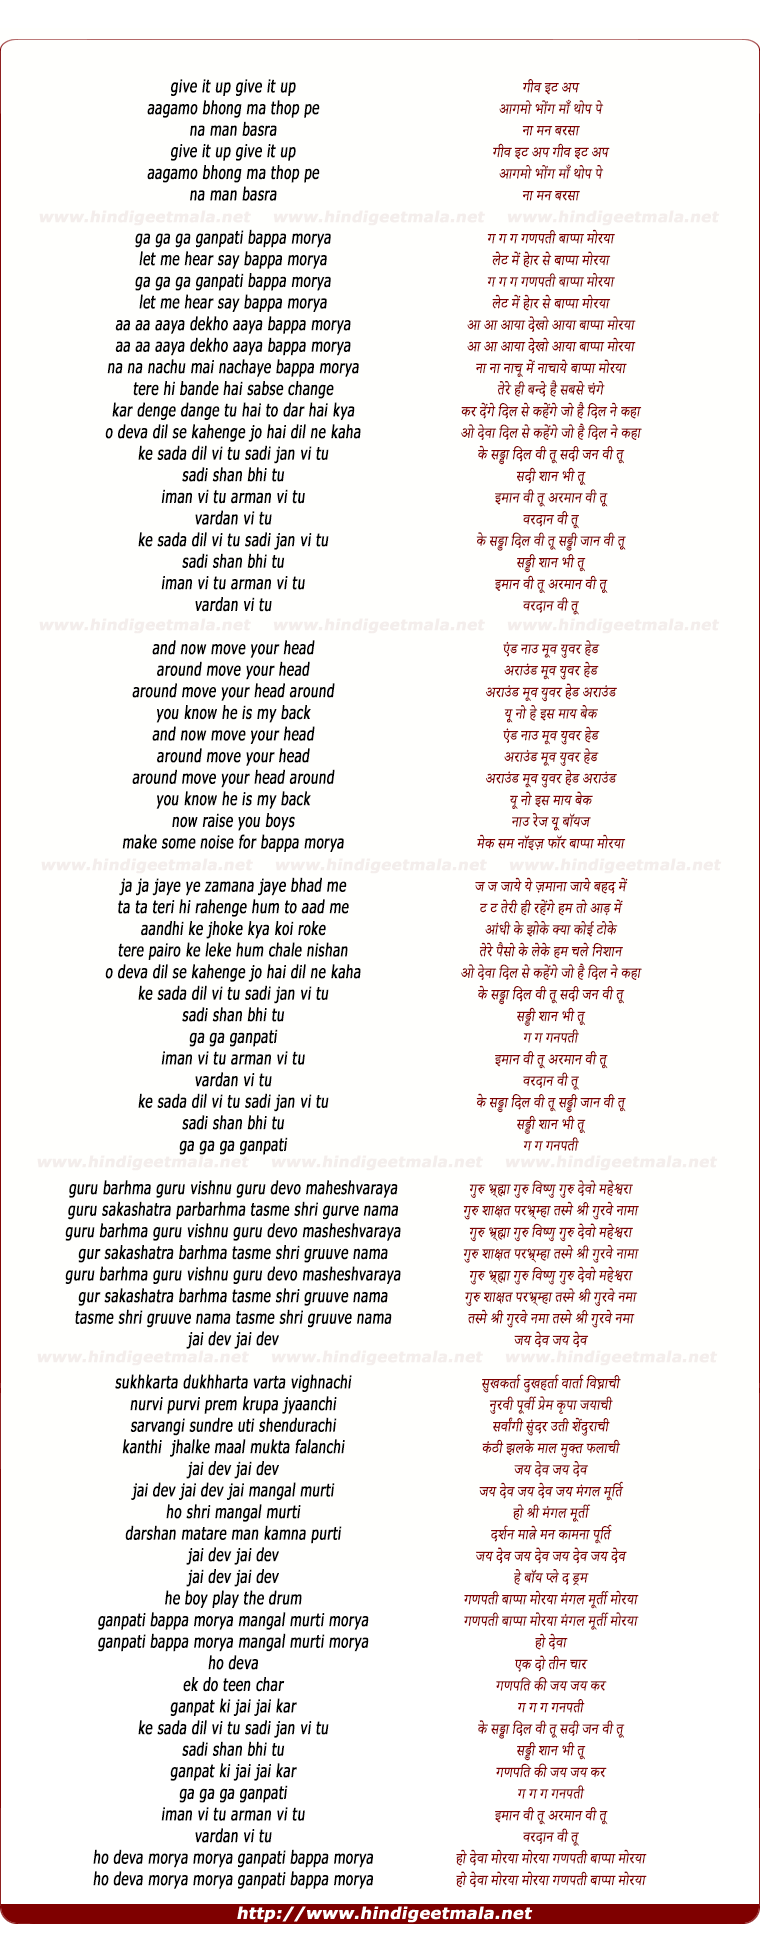 lyrics of song Are Chala Chala Chala Mandali (Ga Ga Ga Ganpati)